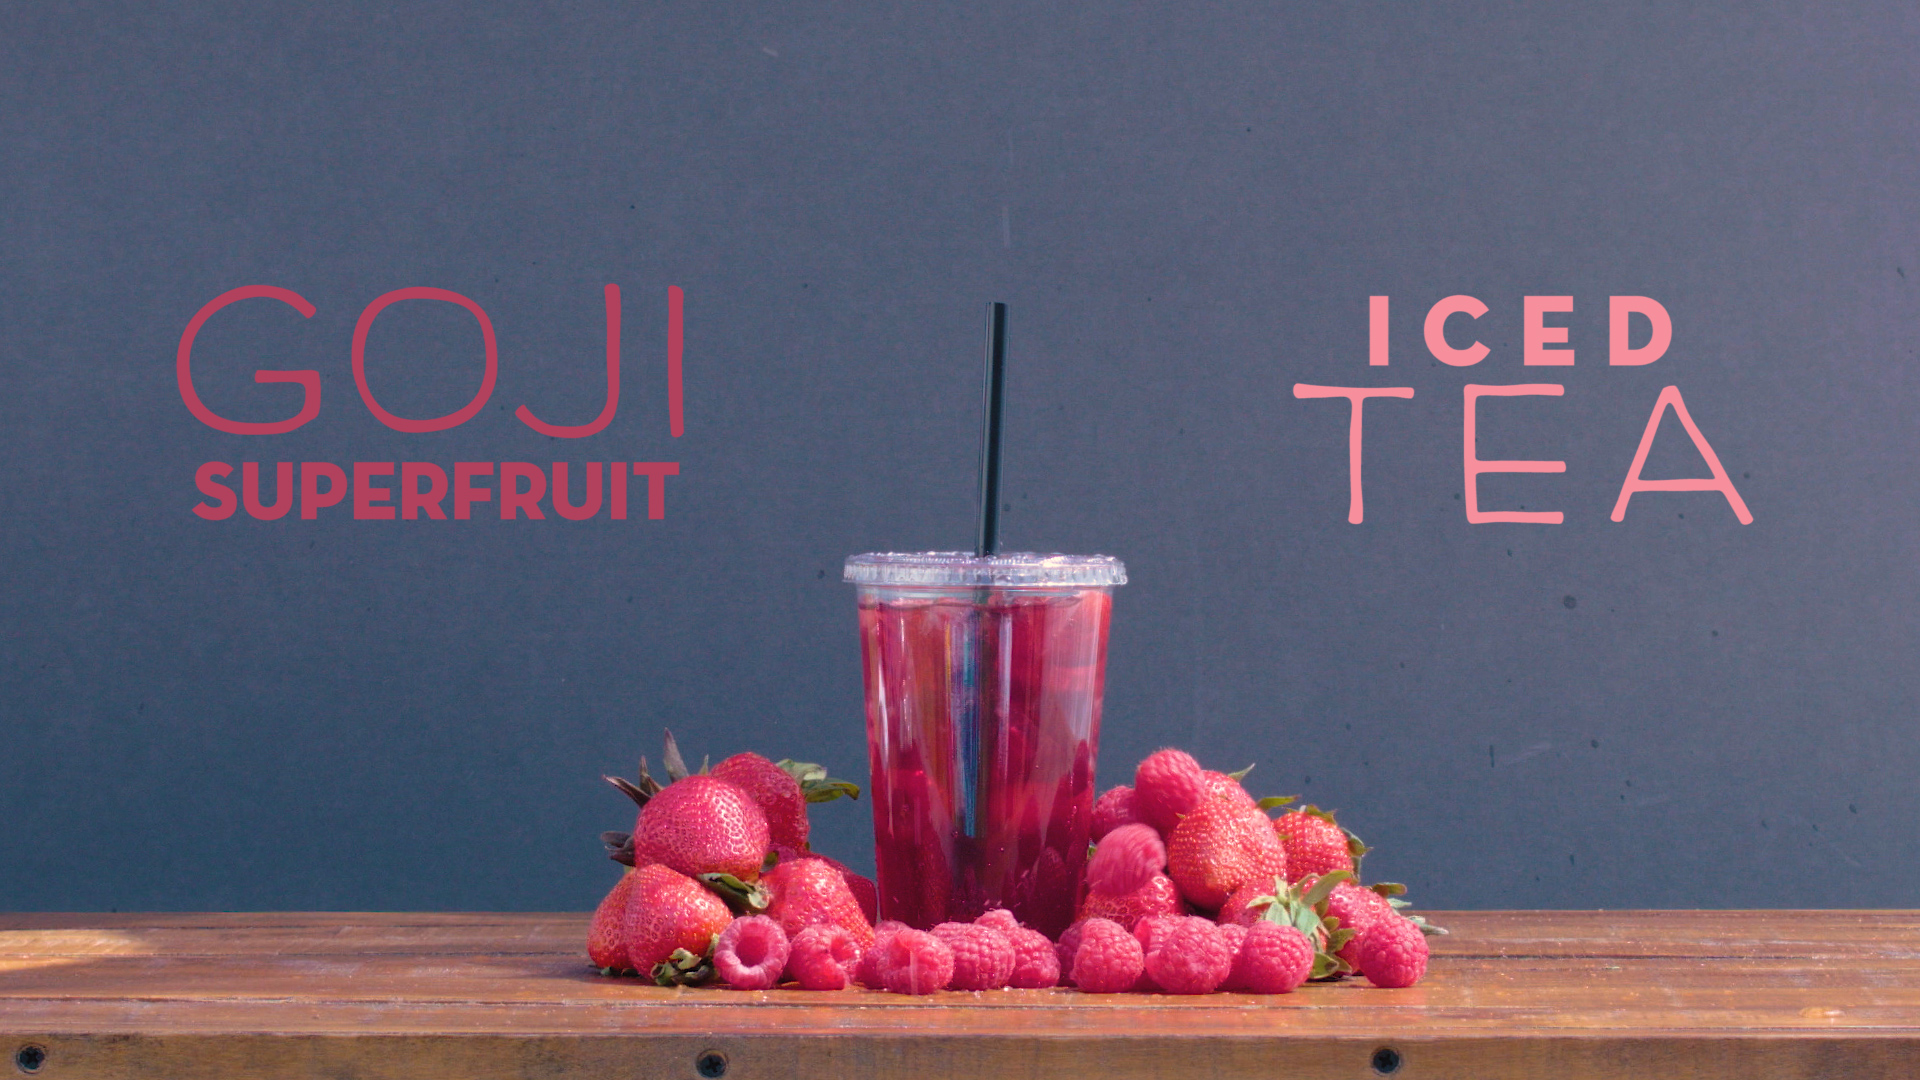 Goji Superfruit Iced Tea